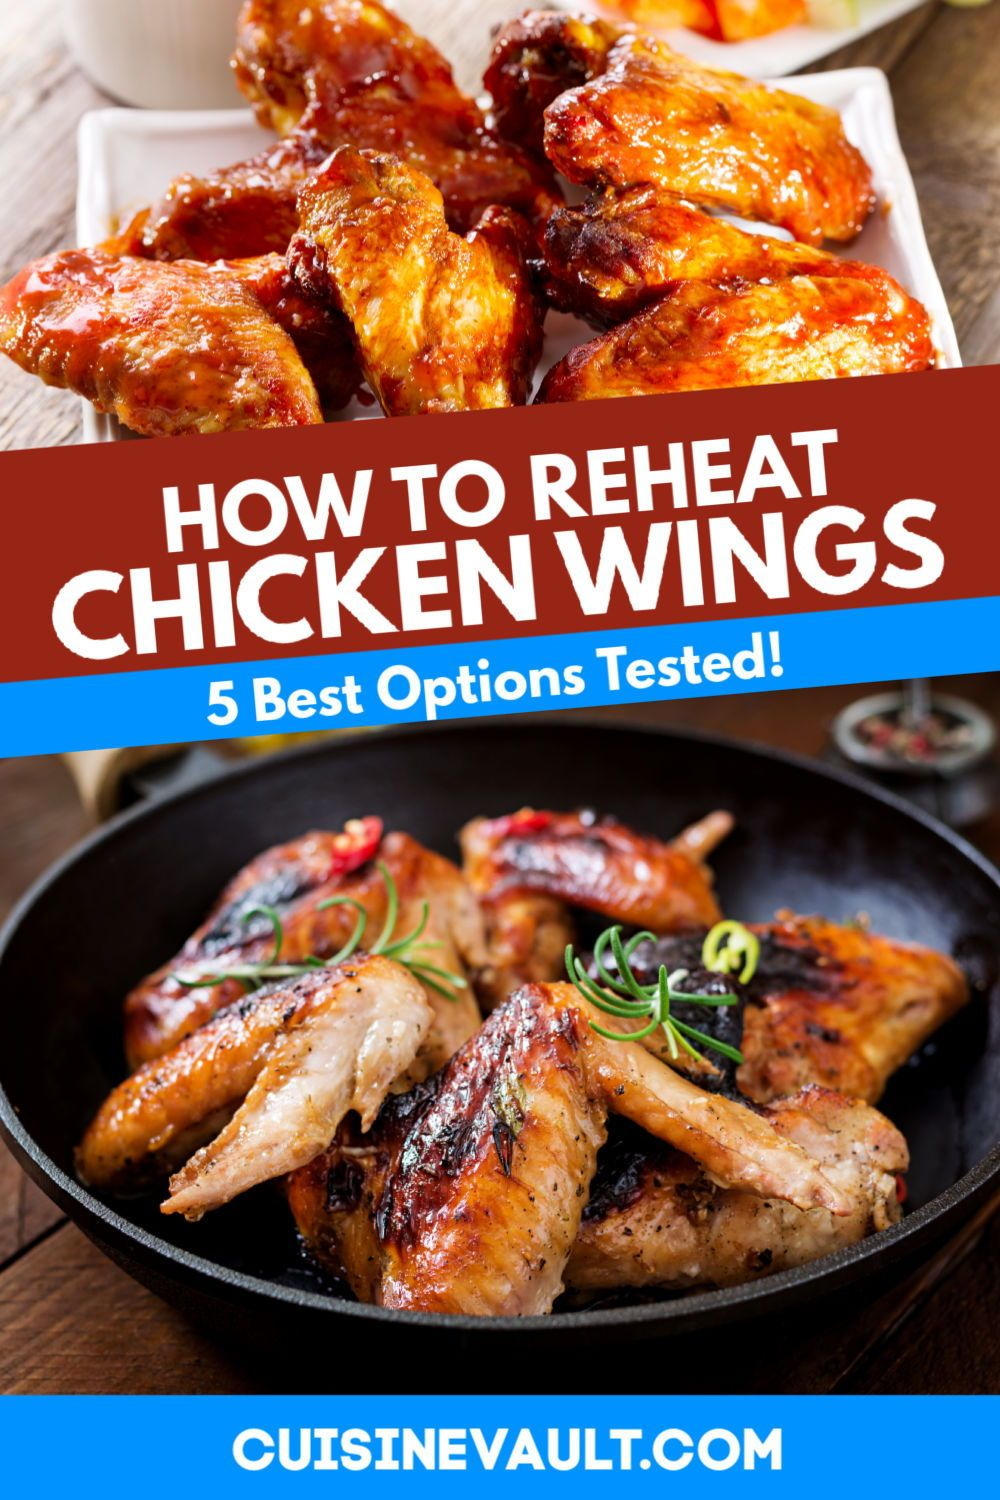 A Guide To Reheating Chicken Wings In 2020 Cooking Cooking For Beginners Chicken Wings